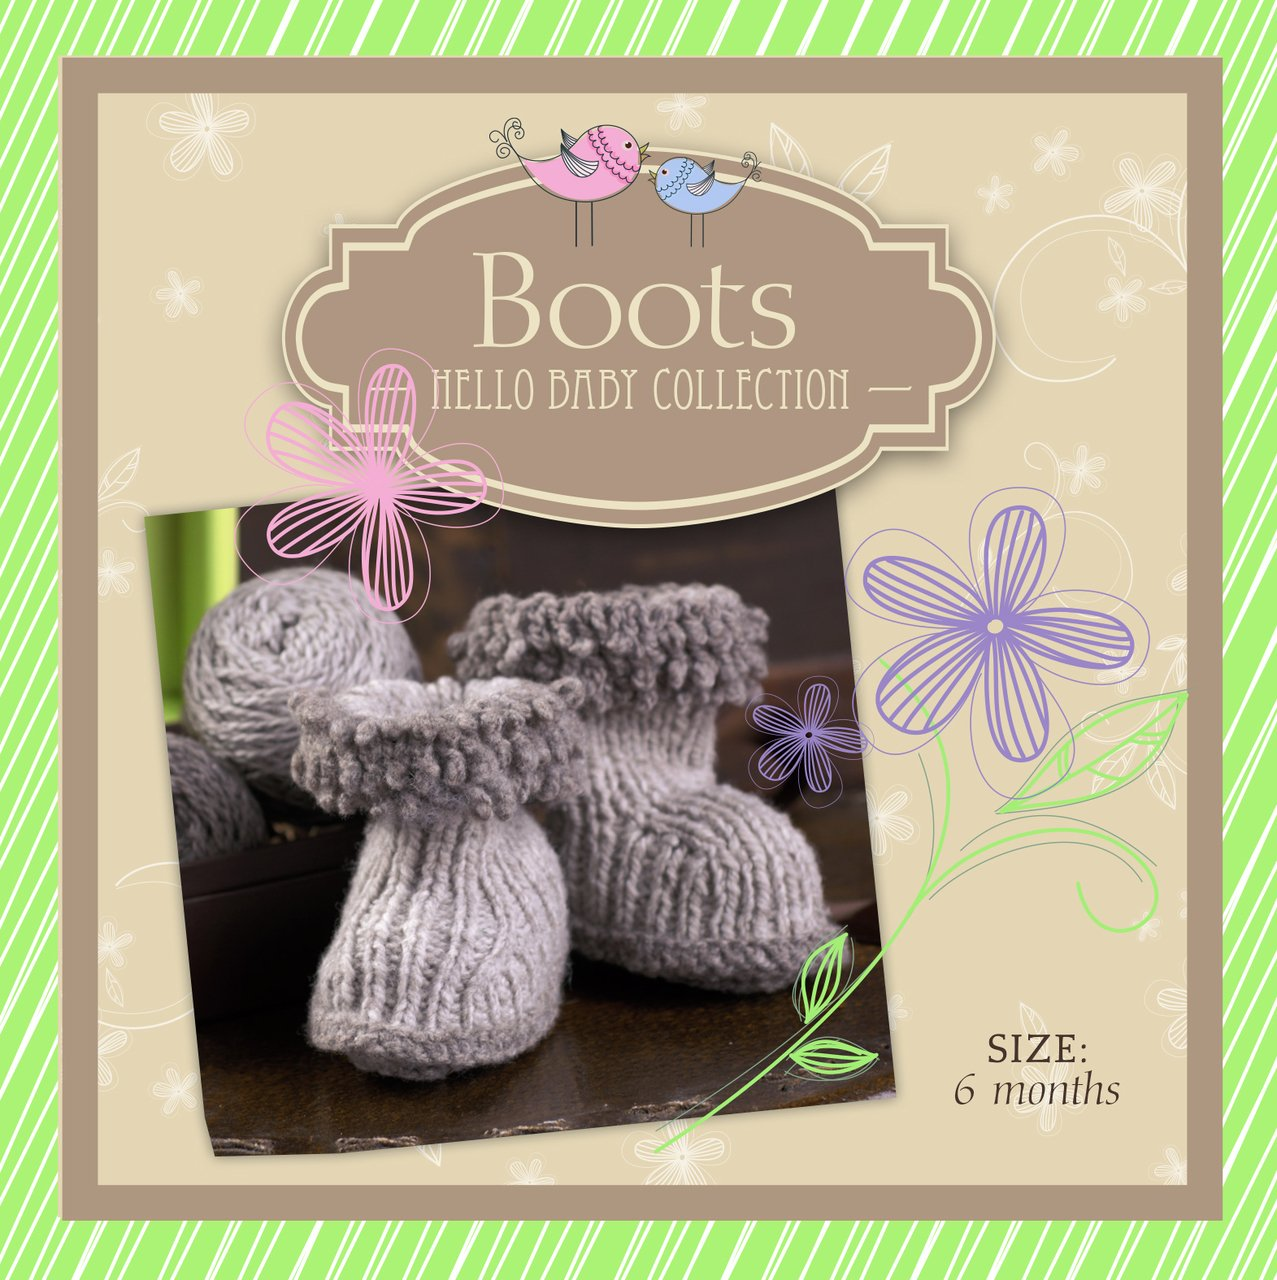 Hello Baby Wool Boots